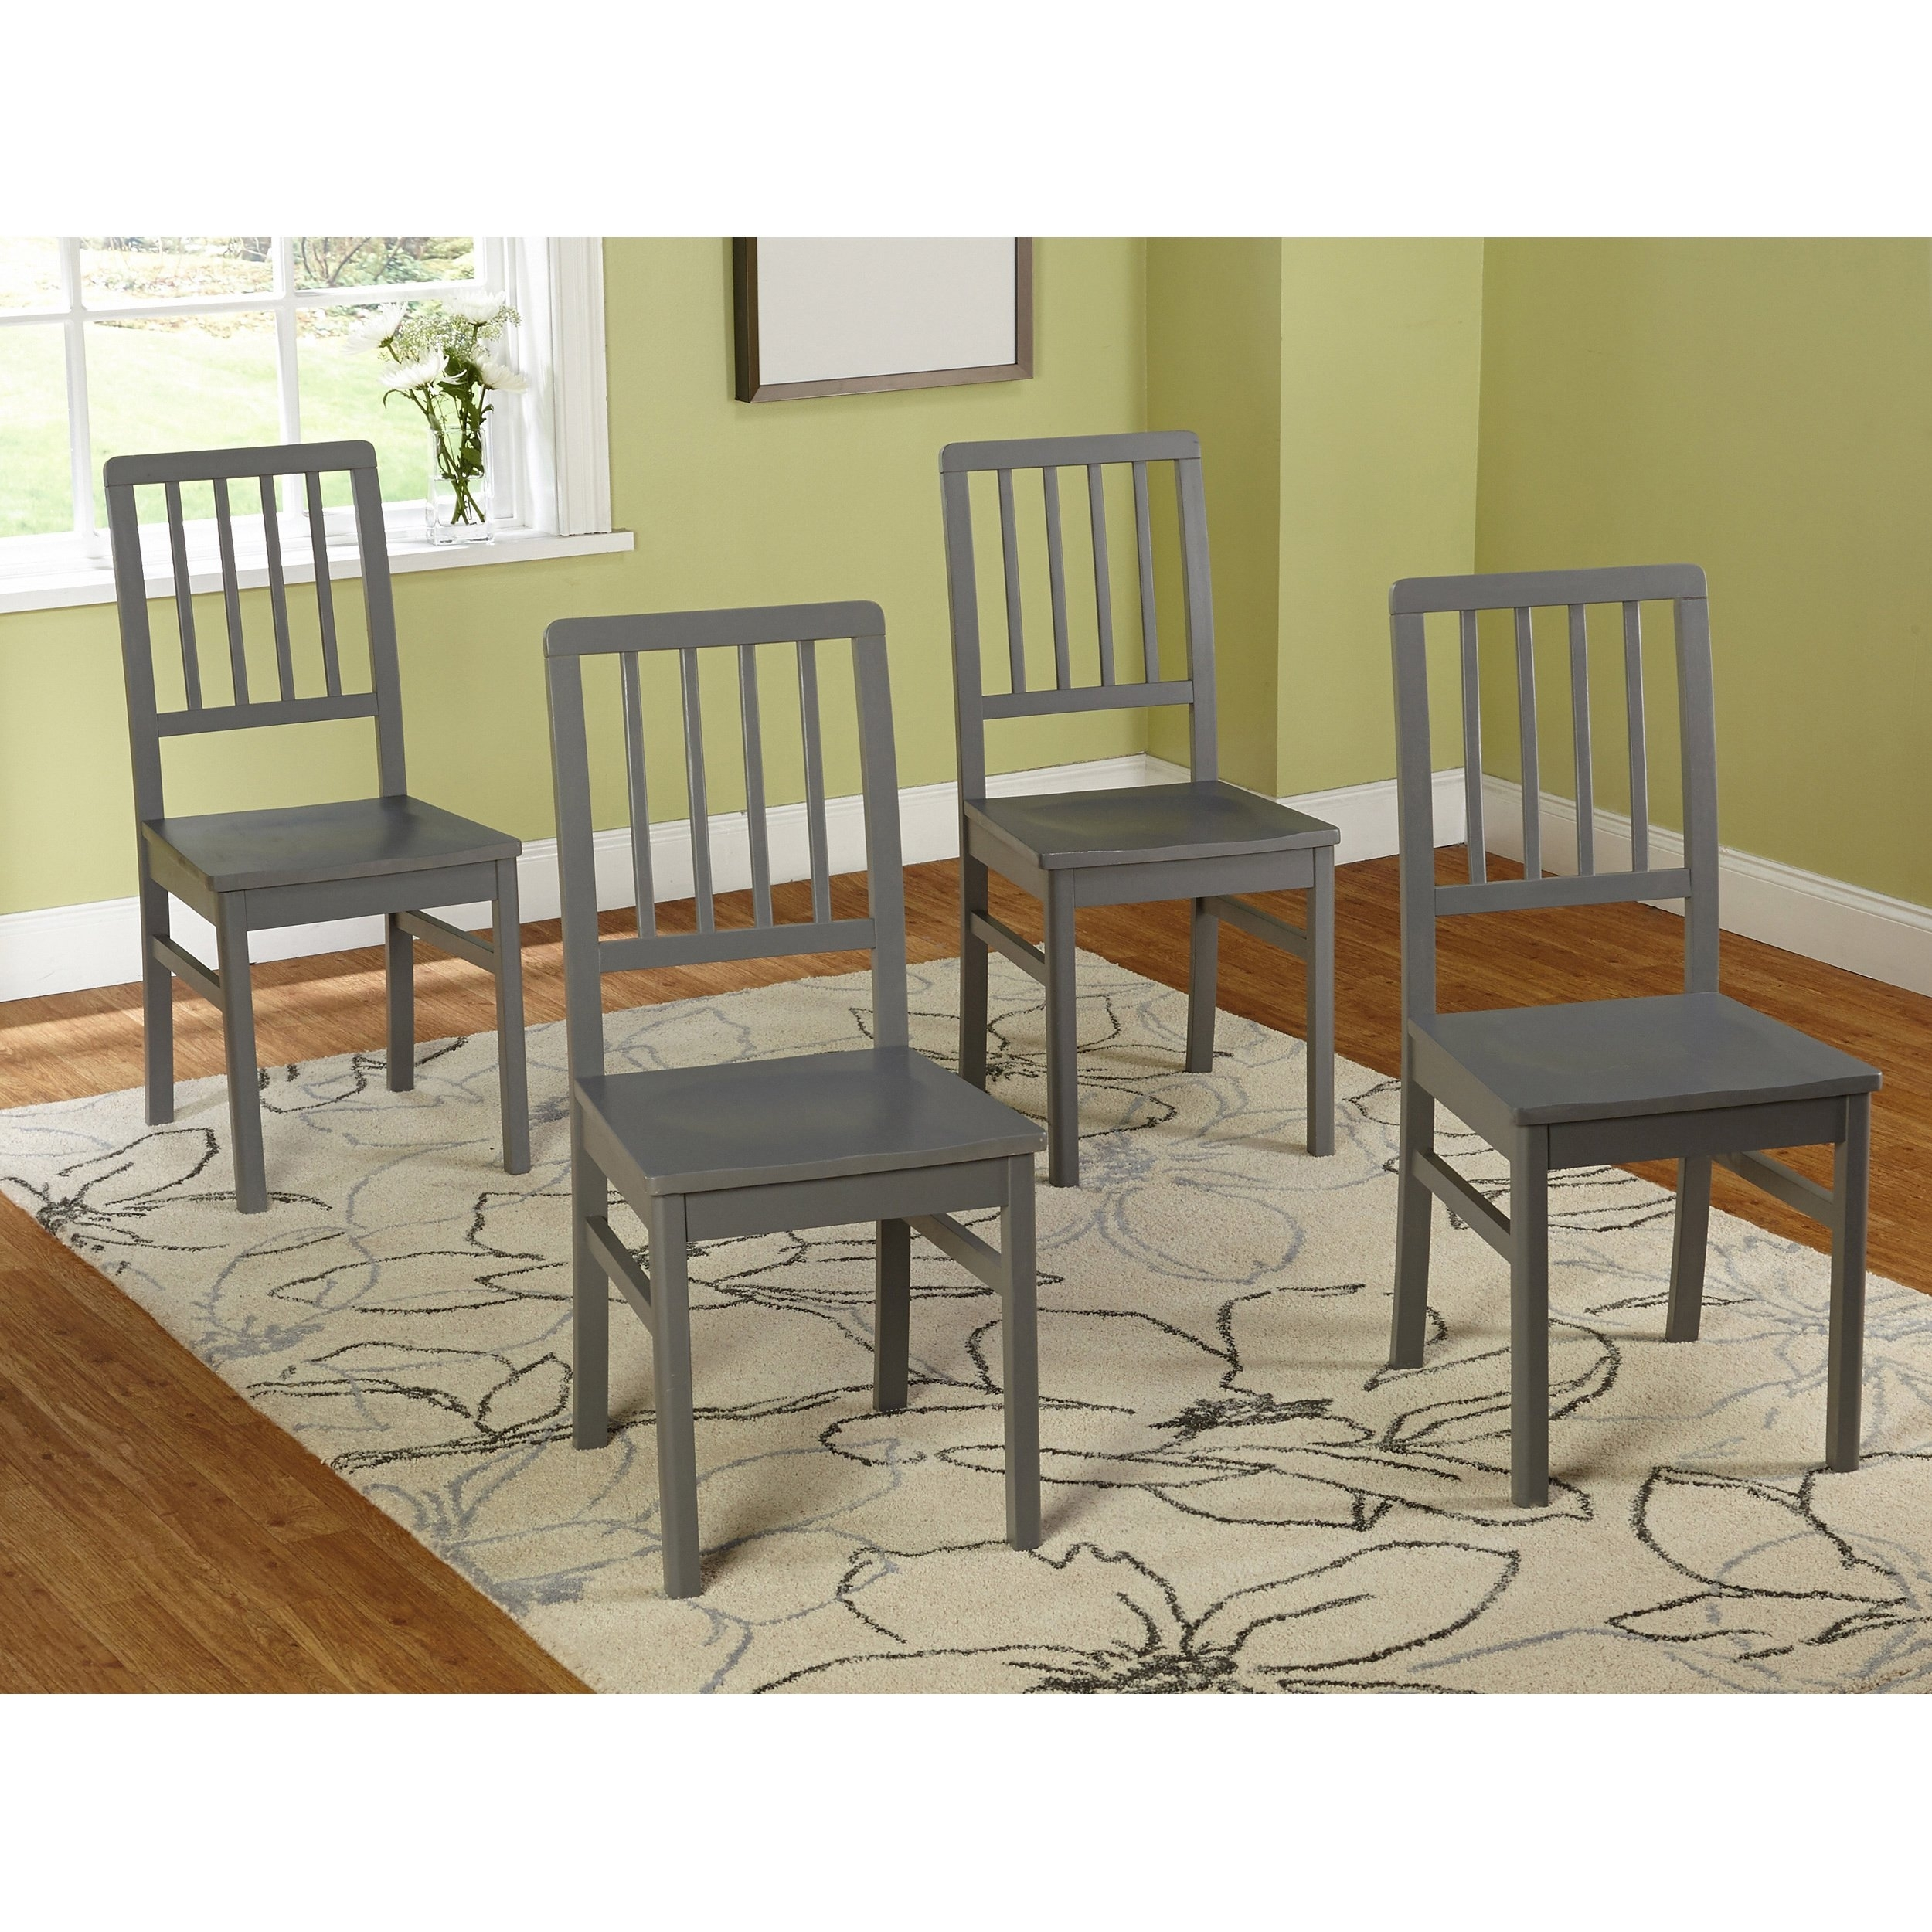 Most Recent Camden Dining Chairs Intended For Shop Simple Living Camden Dining Chair (Set Of 4) – Free Shipping (#14 of 20)